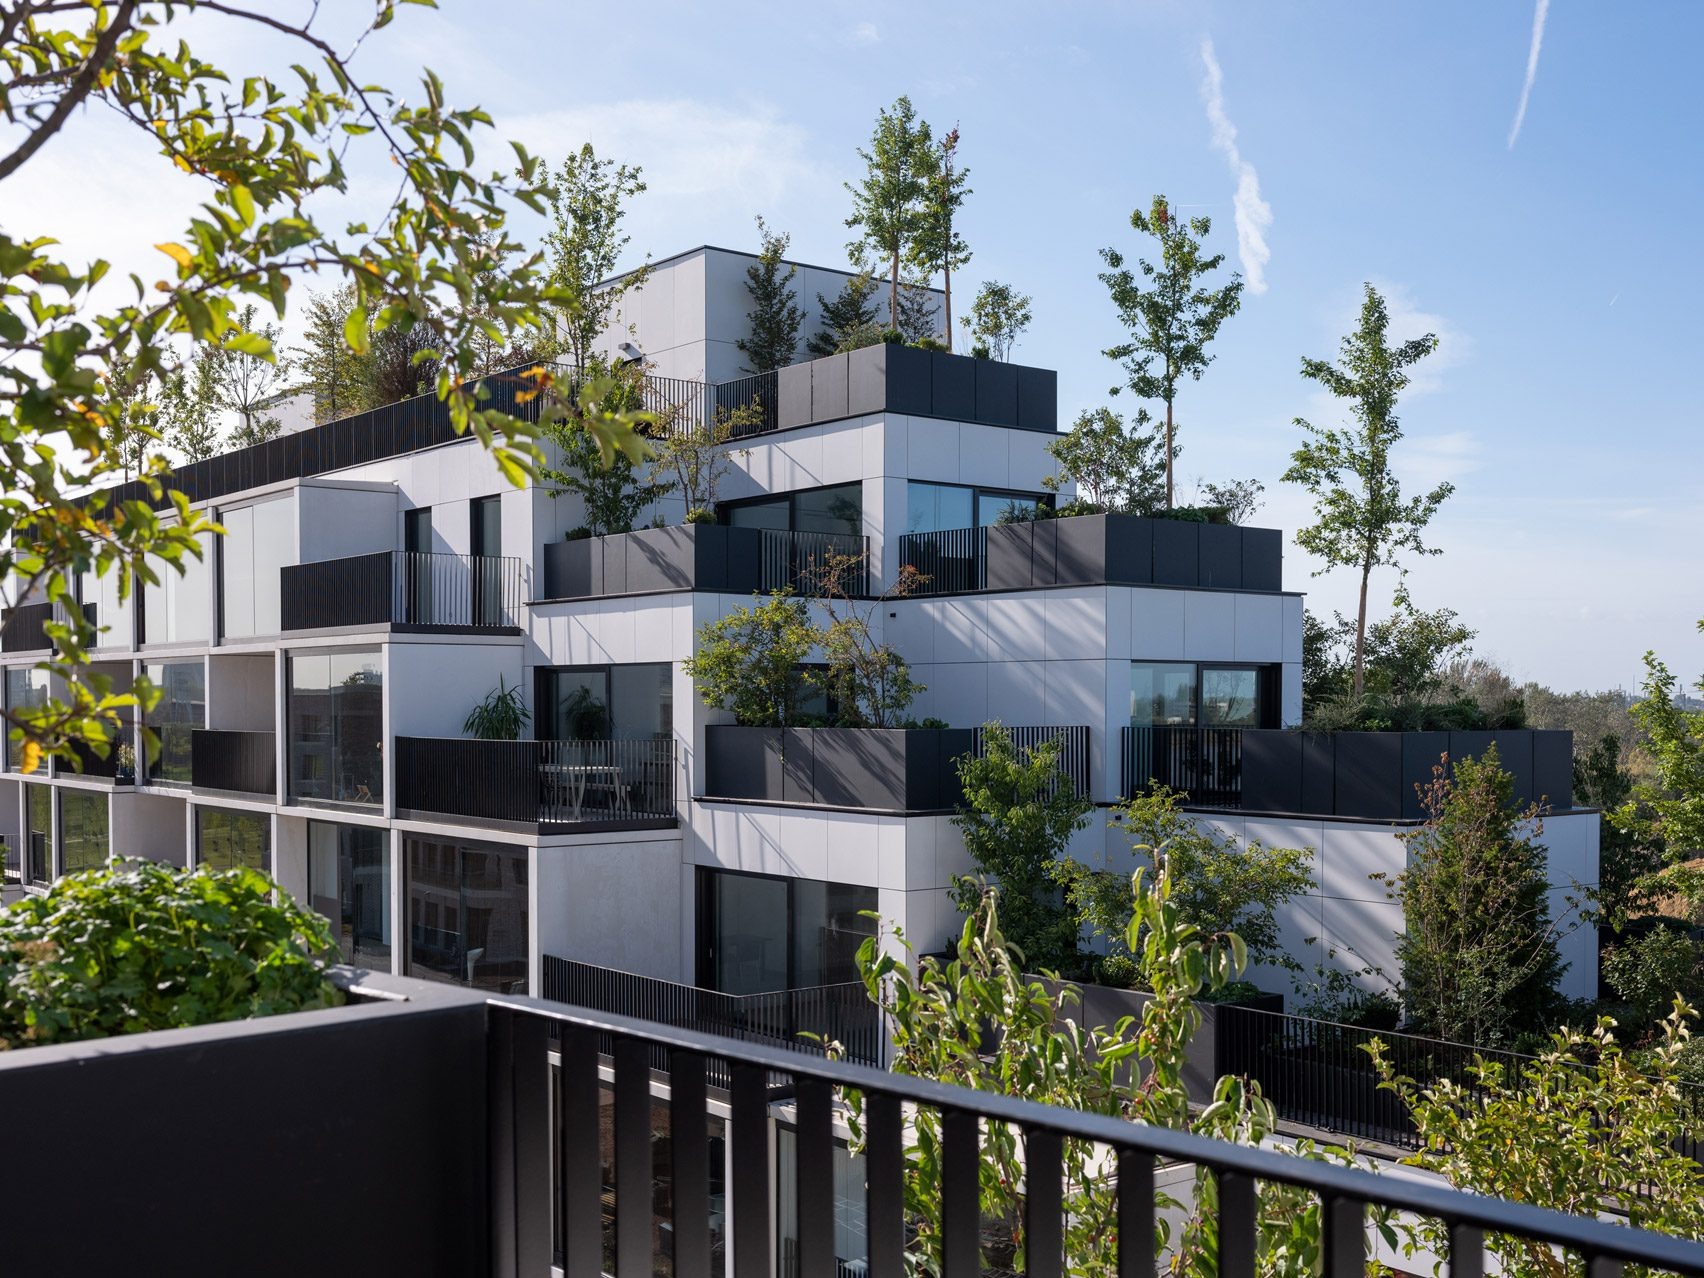 Plant-covered housing in Antwerp